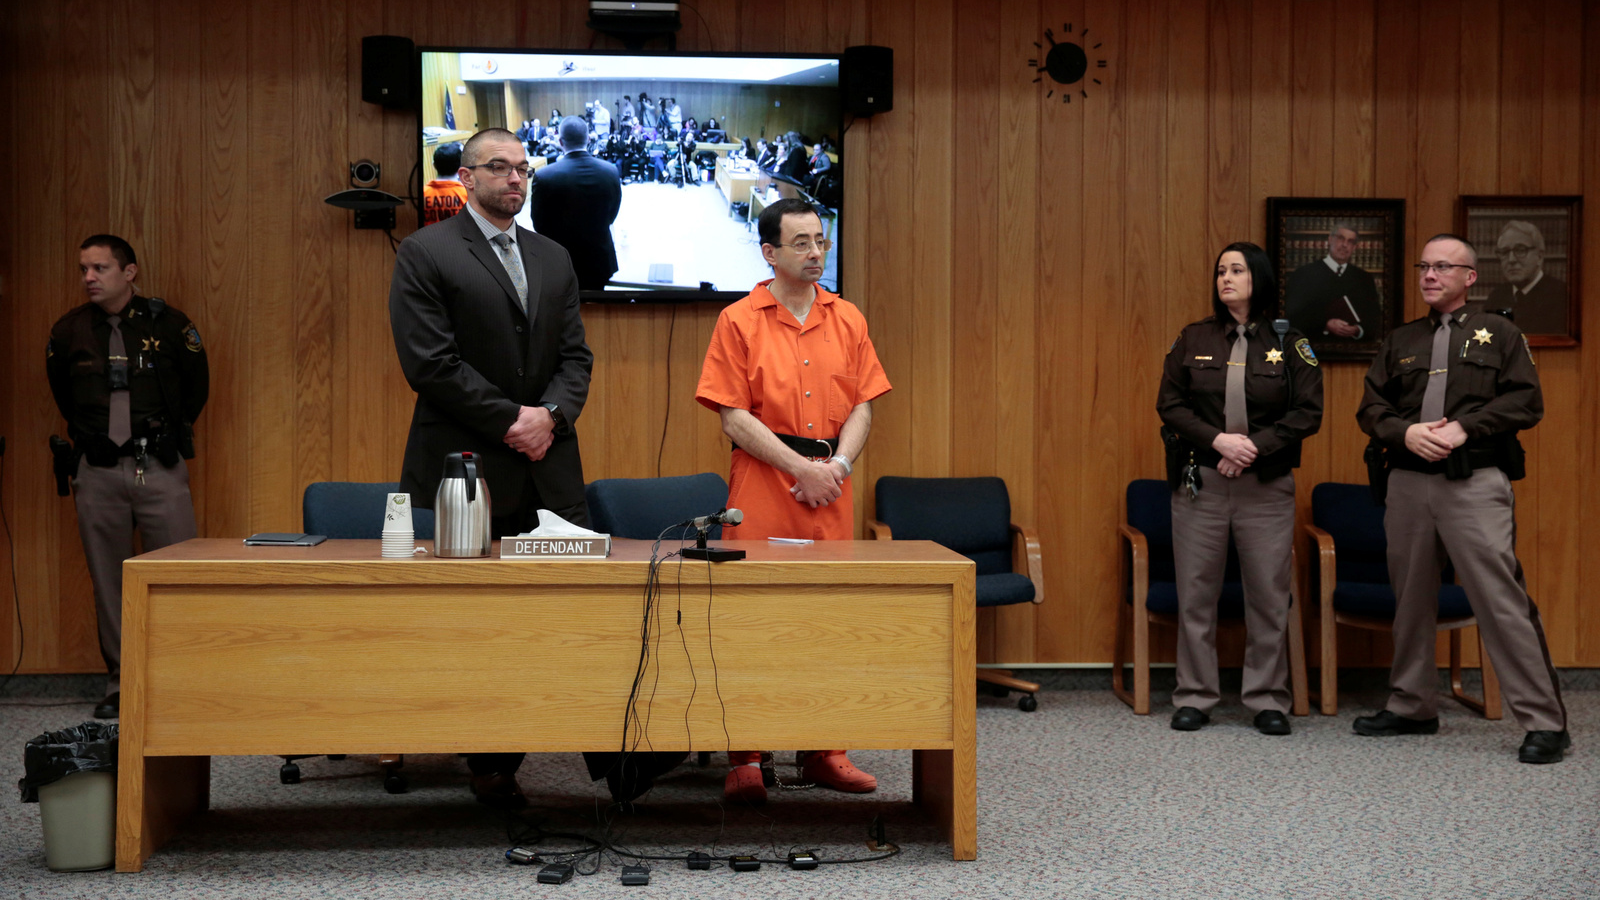 Larry Nassar, a former team USA Gymnastics doctor who pleaded guilty in November 2017 to sexual assault charges, and his defense attorney Matt Newburg stand during Nassar's sentencing hearing in the Eaton County Court in Charlotte, Michigan, Feb. 5, 2018.